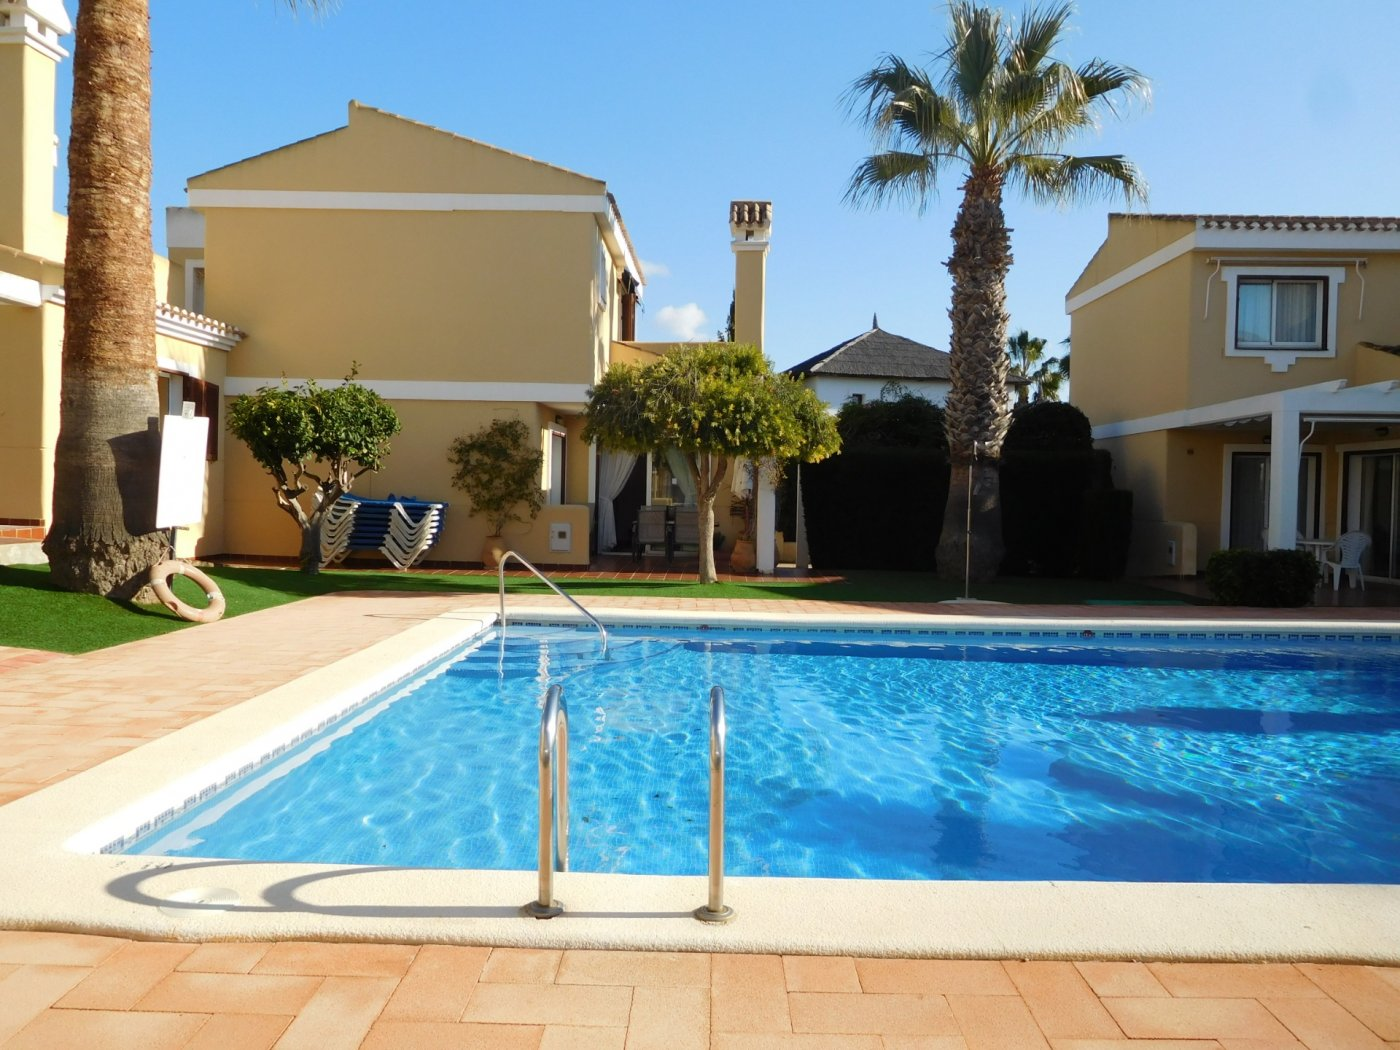 Gallery Image 37 of Casa For rent in Los Naranjos, La Manga Club With Pool